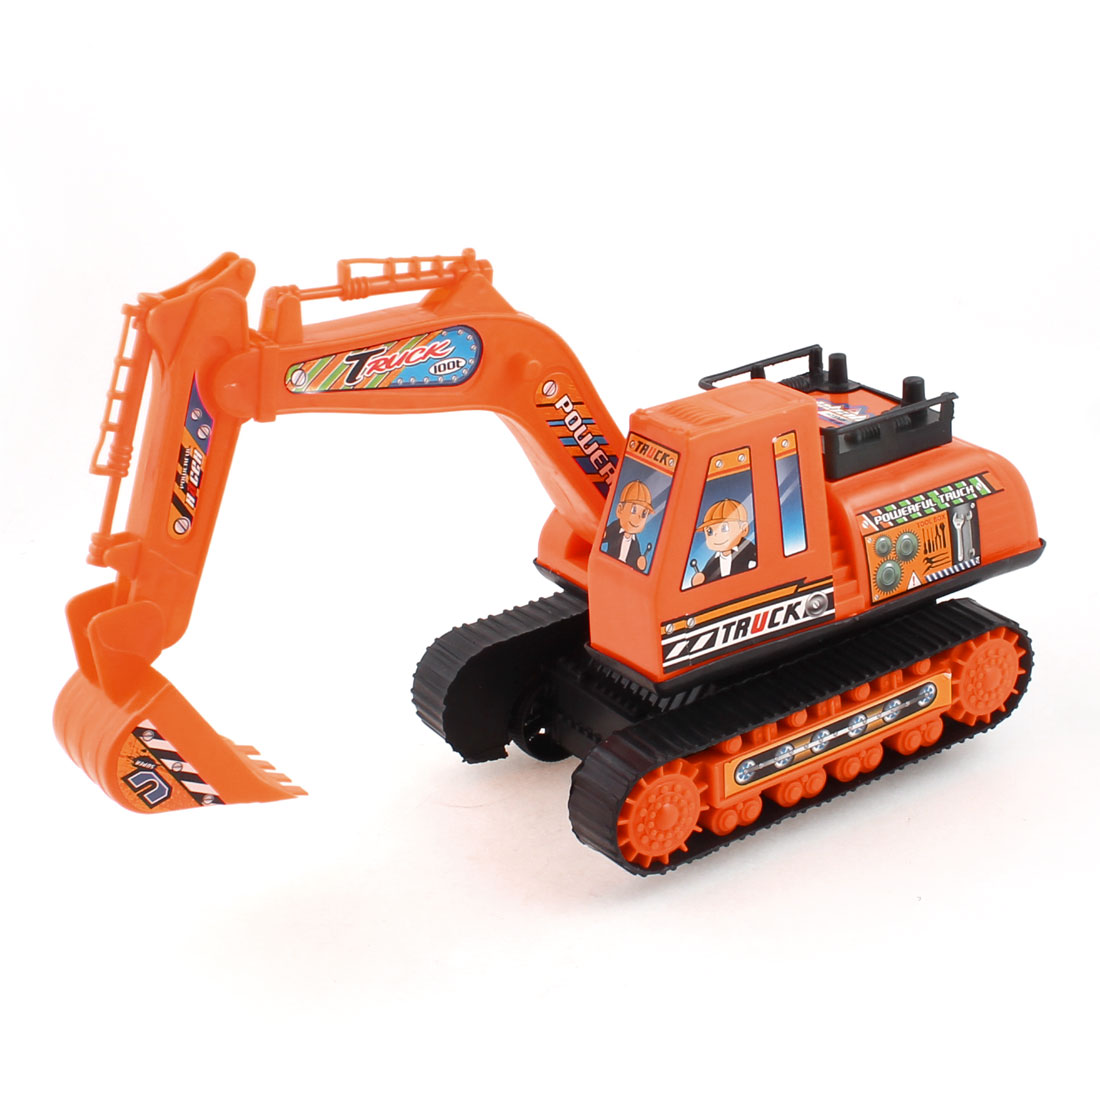 Black Orange Plastic Imitated Excavator Toy for Children